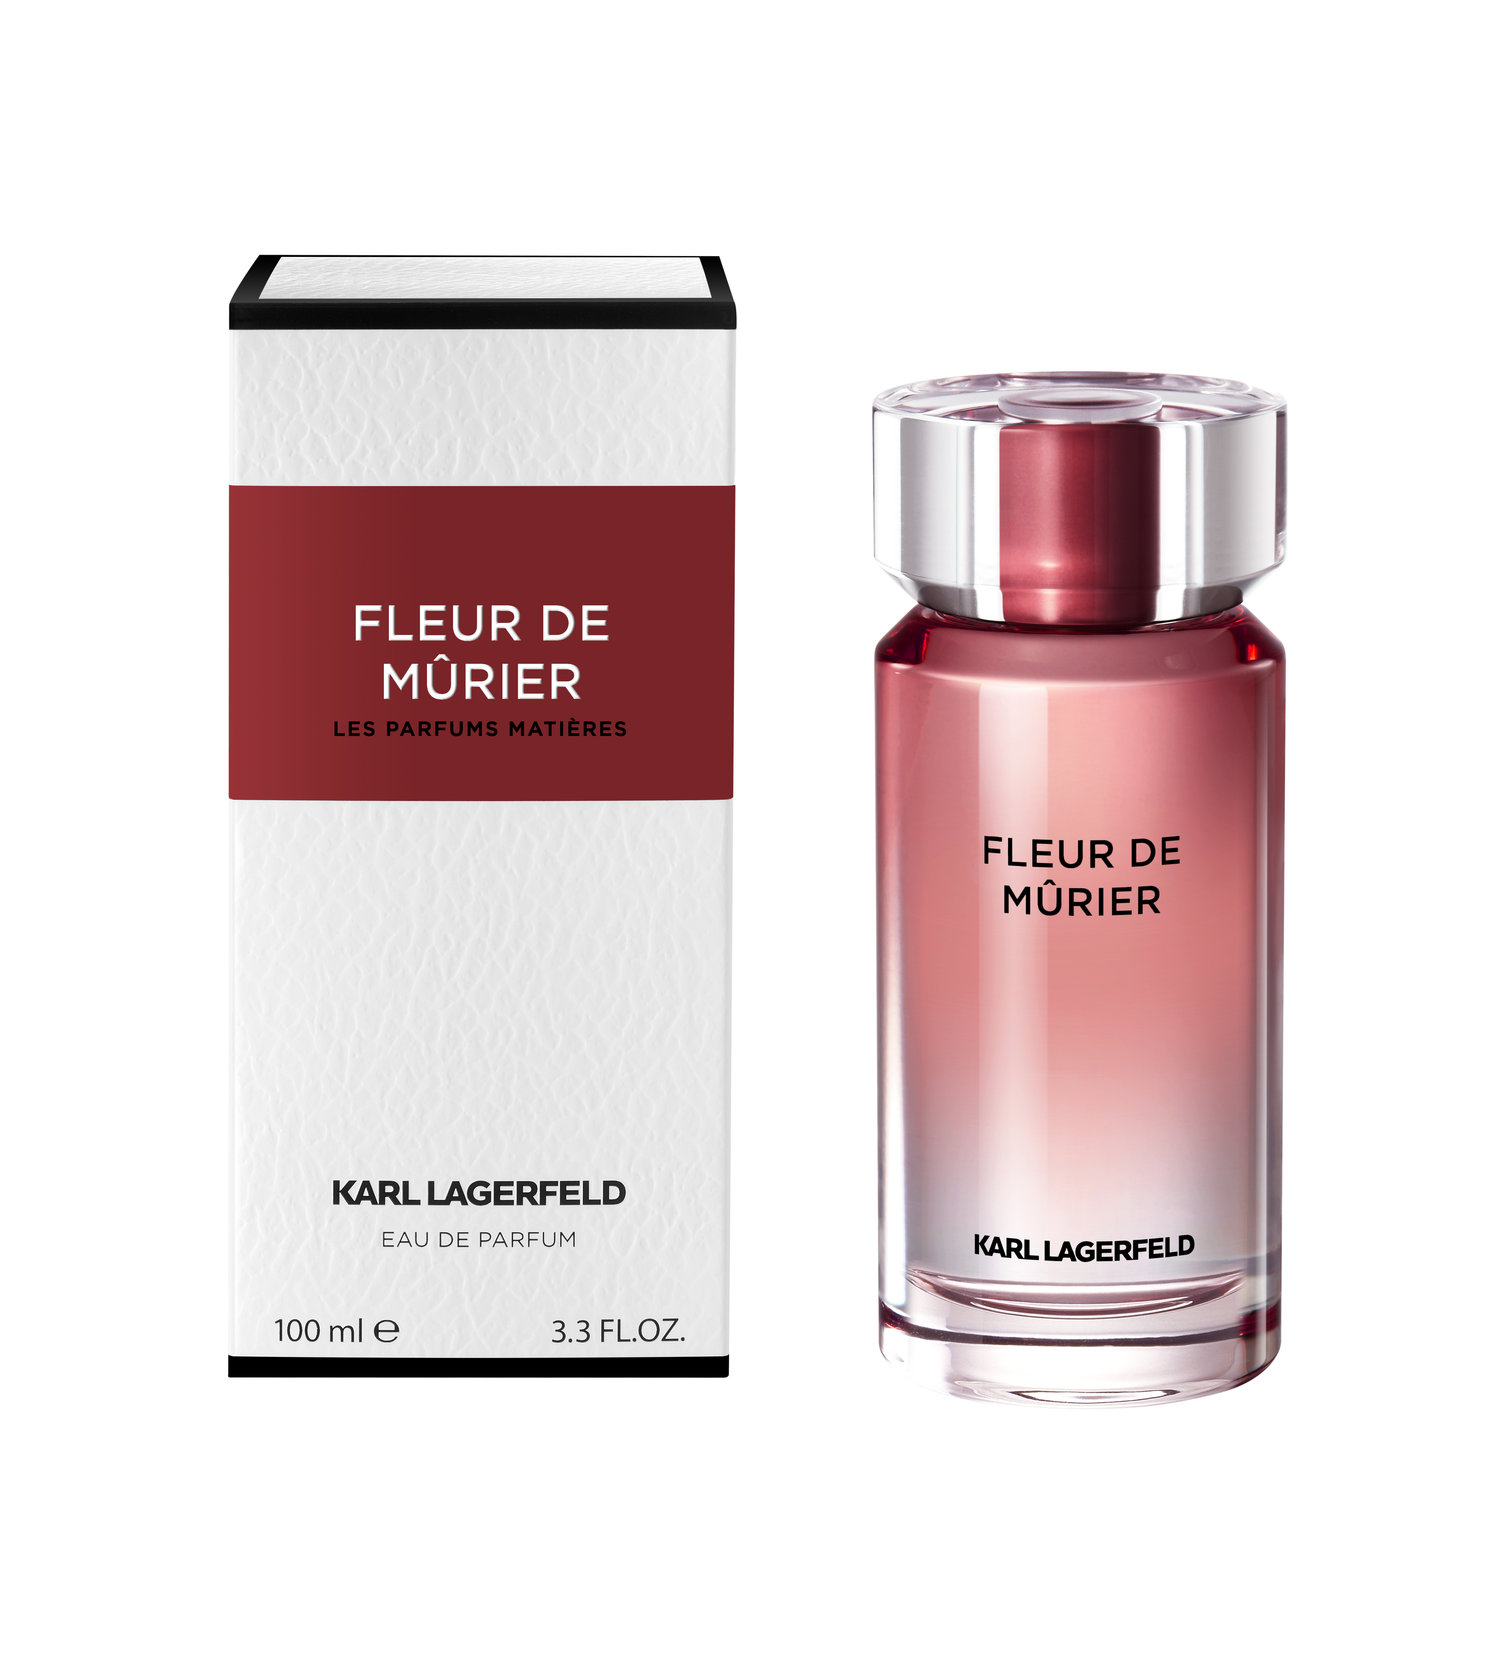 3386460101851-karl-parfums-matieres-fleurs-de-murier-100ml-front-pack-bottle-.jpg